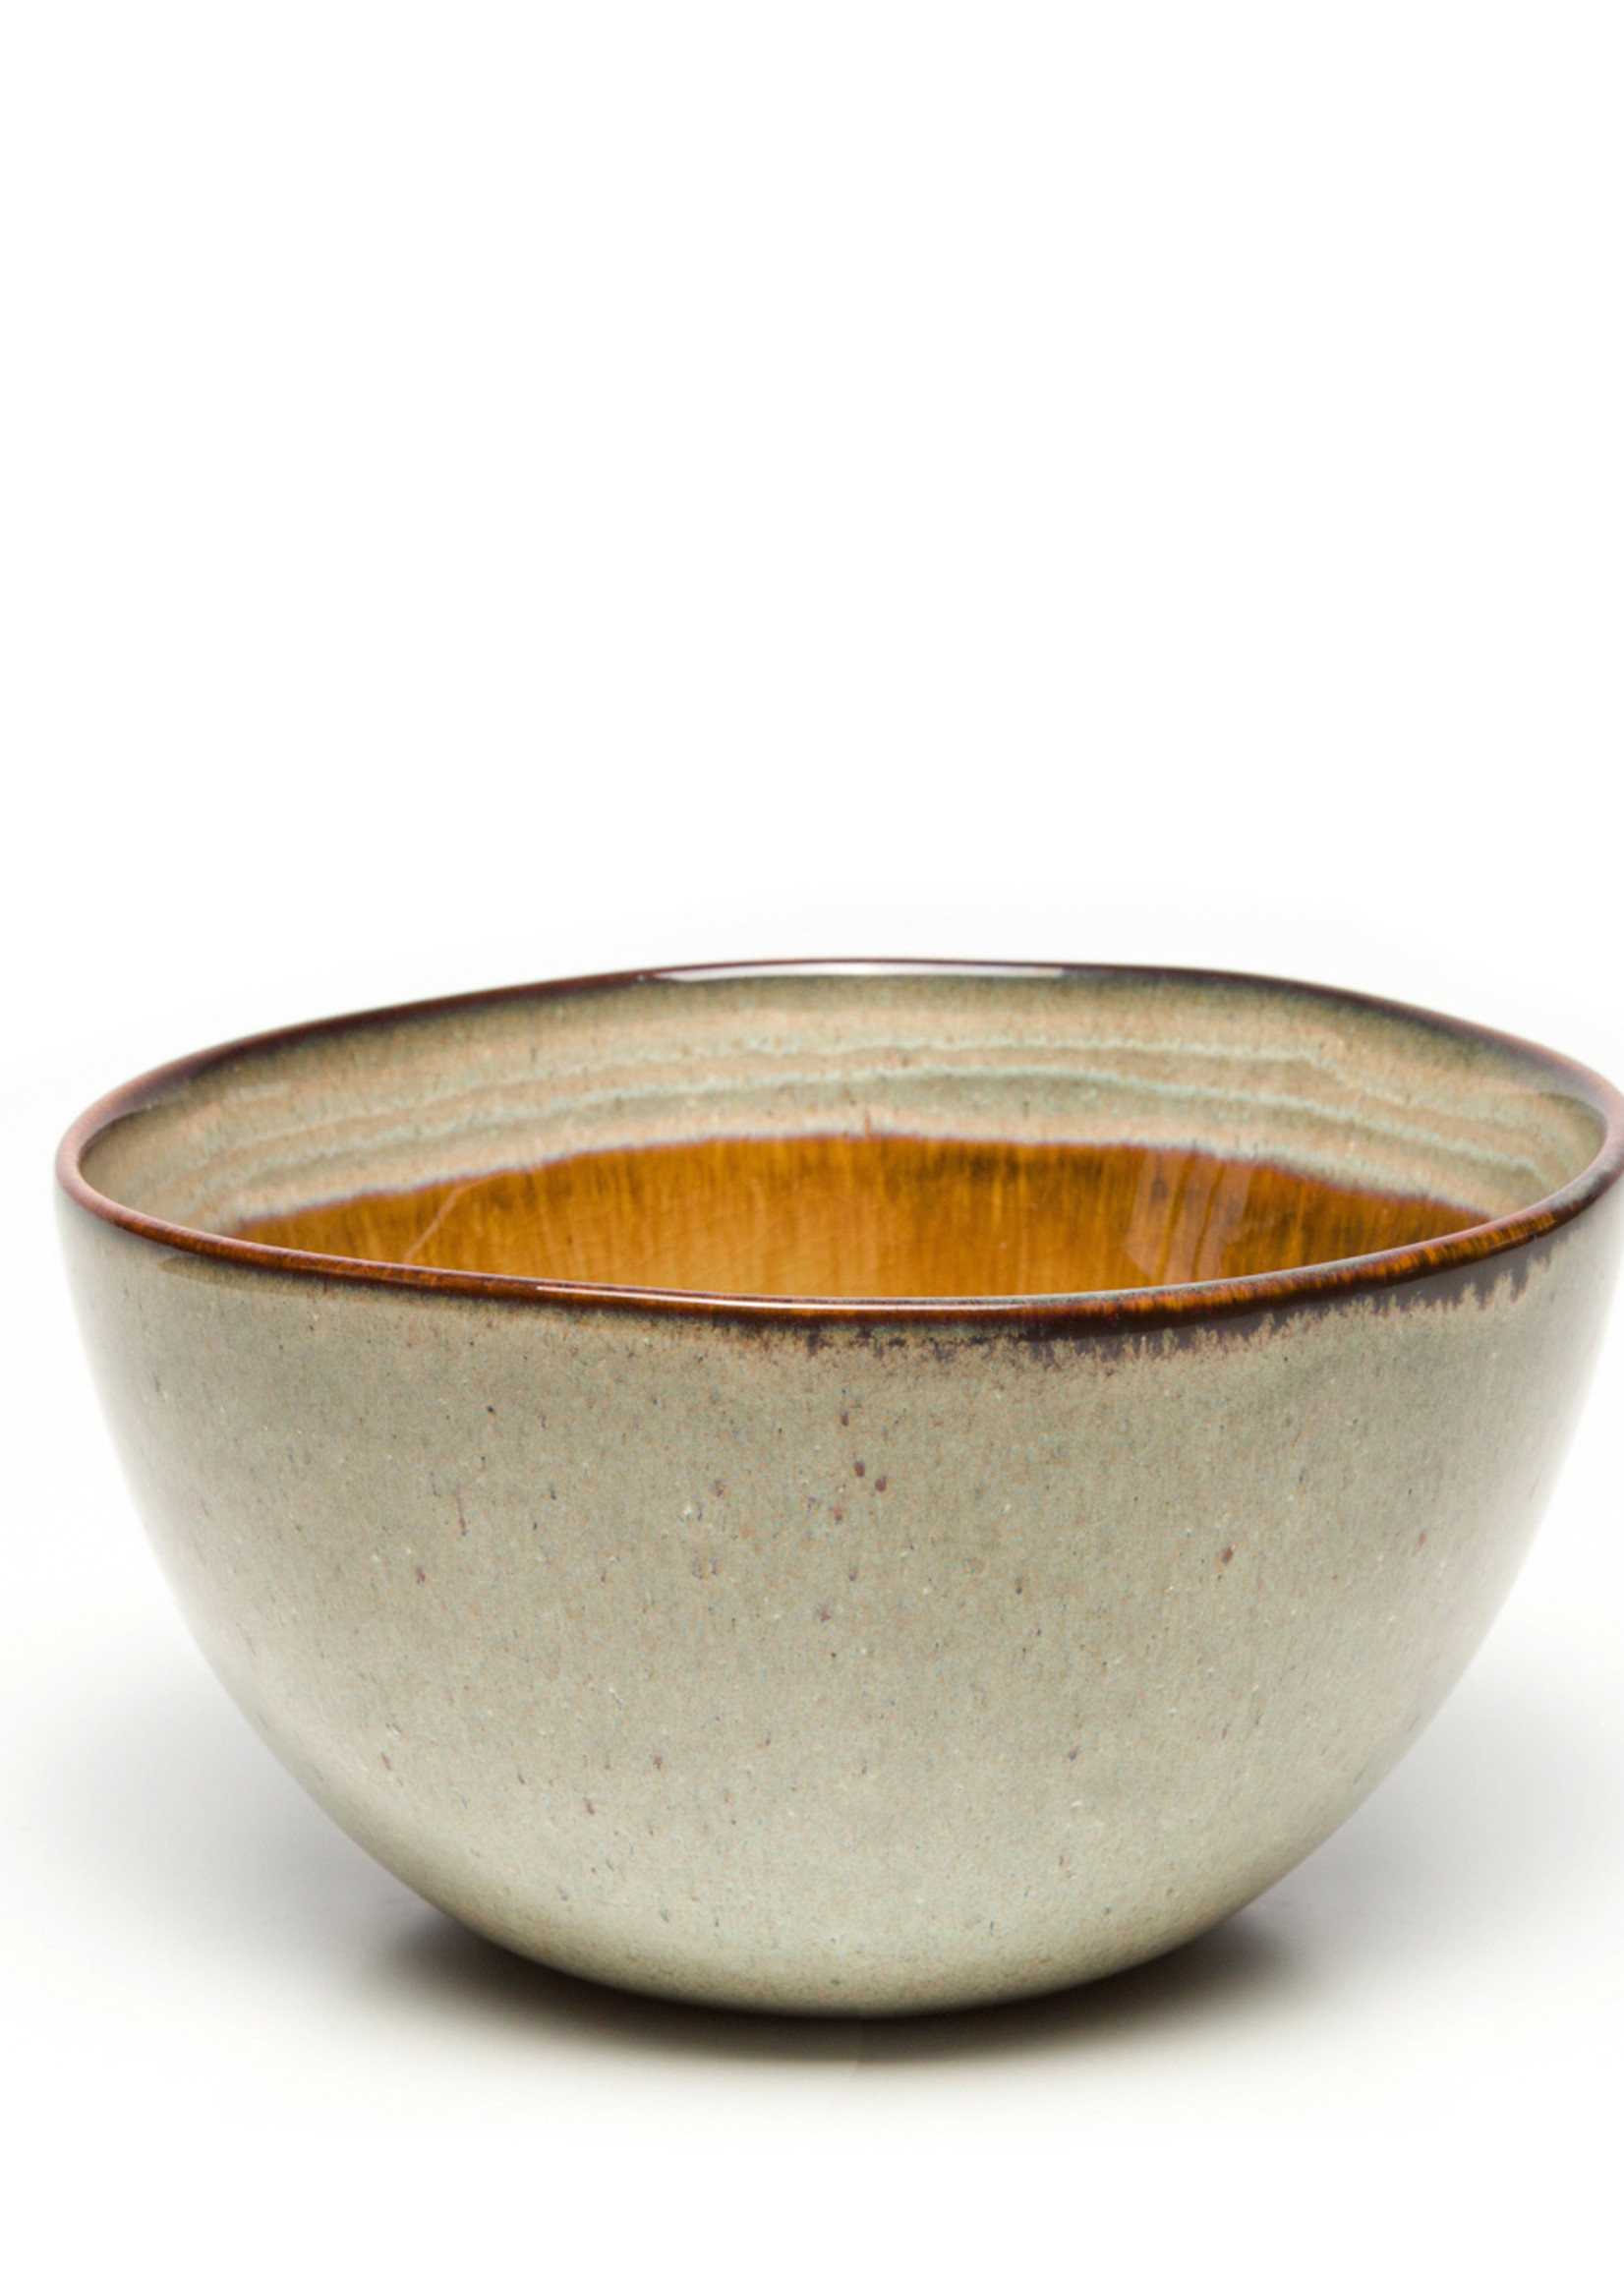 The Comporta Cereal Bowl - M